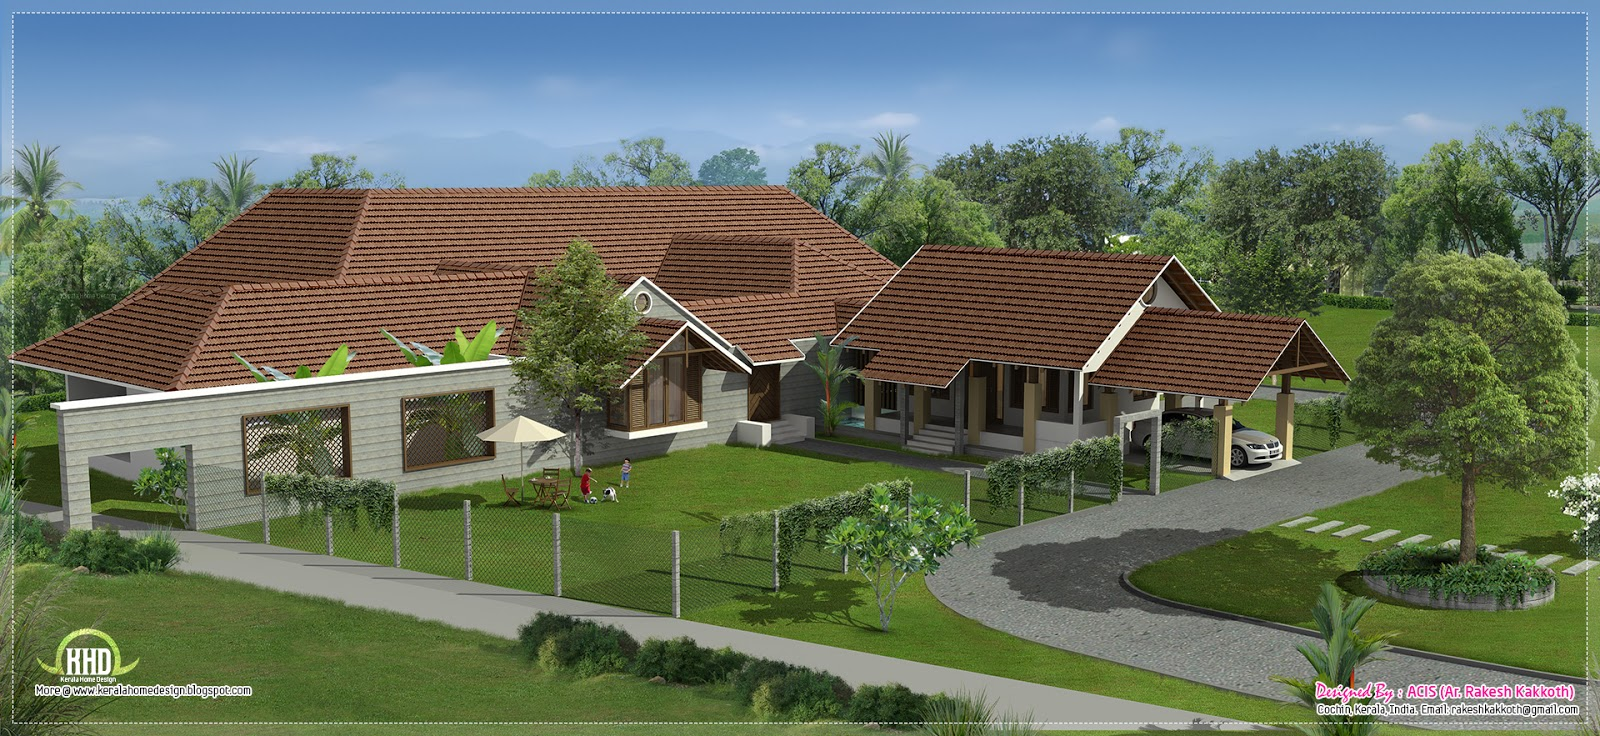 Luxury bungalow exterior design kerala home design and floor plans - Bungalow house plans with photos ...